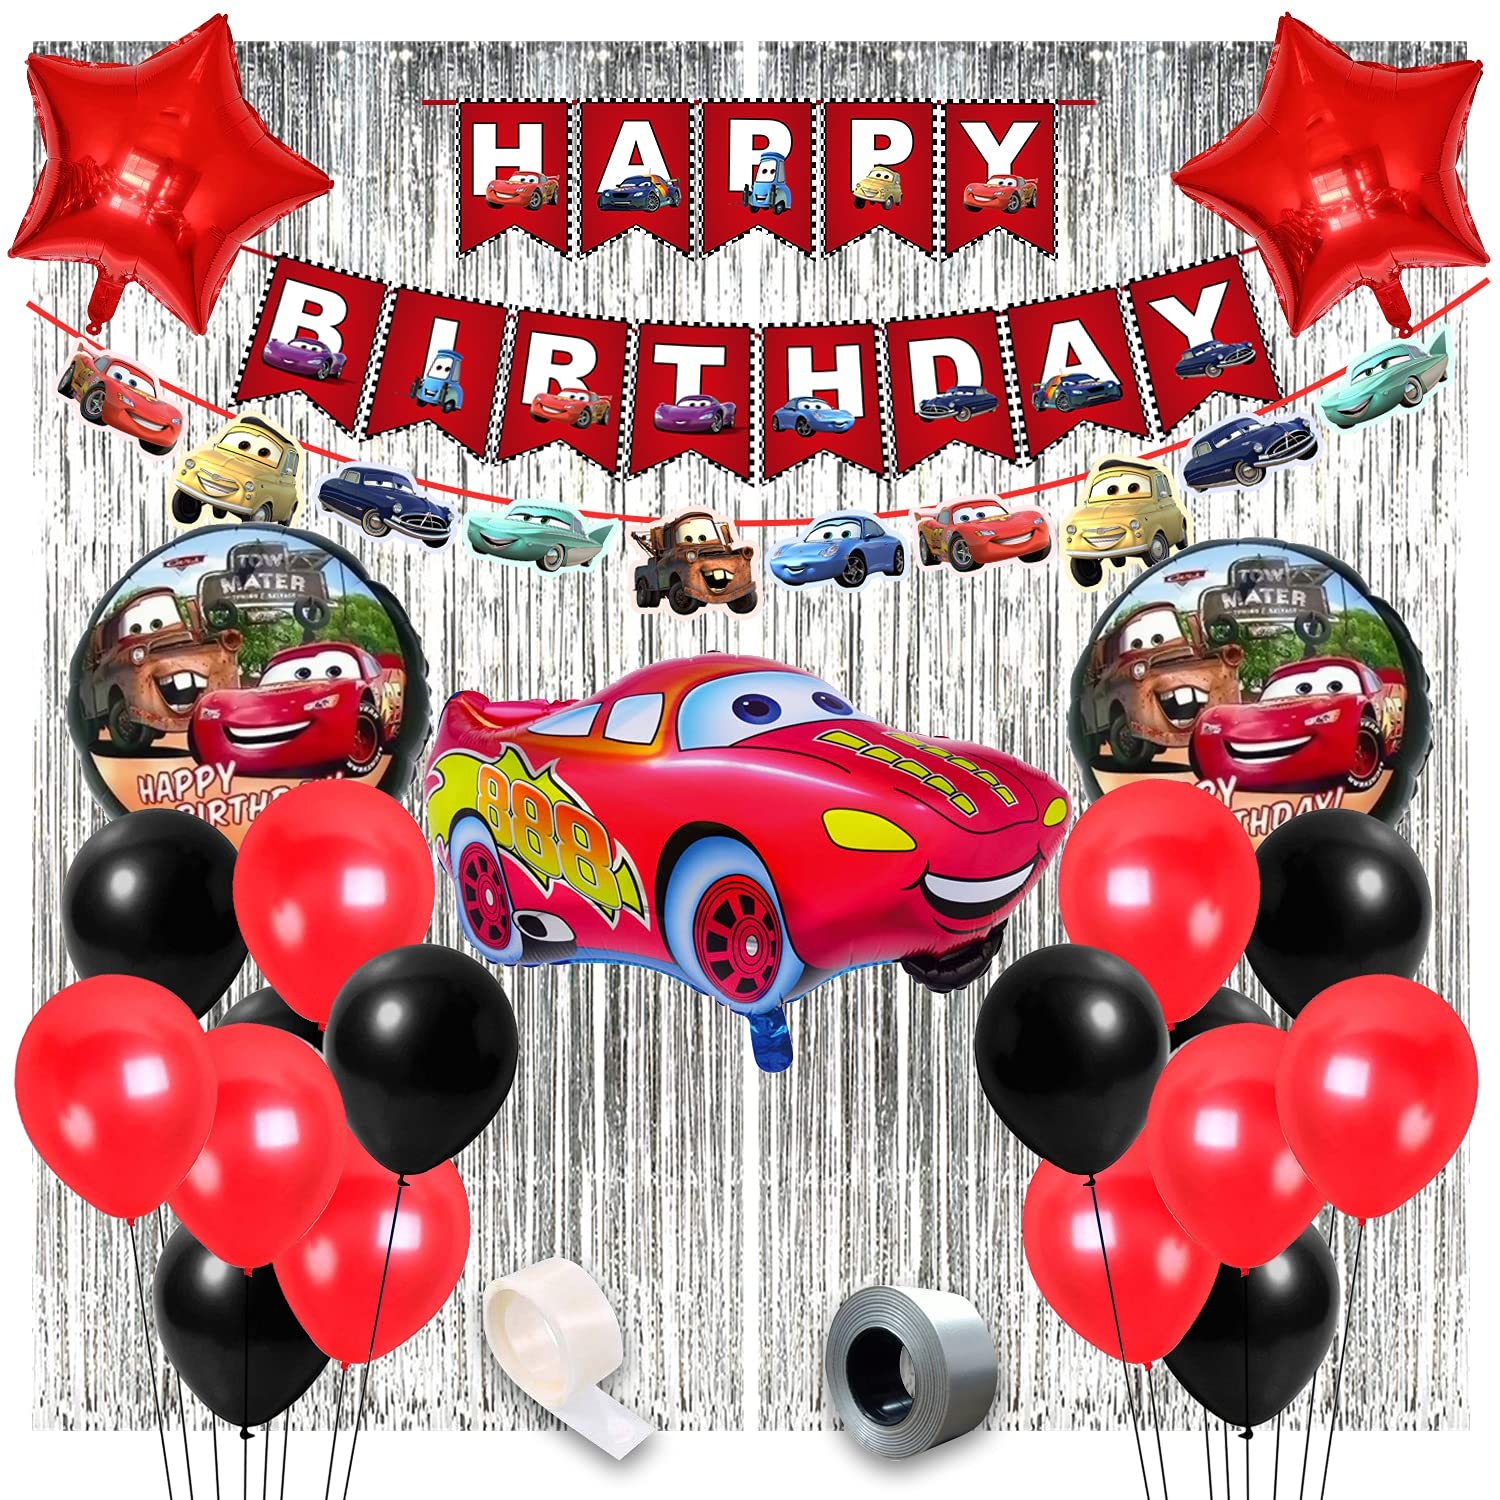 Mcqueen Car Birthday Theme Decorations For Party Supplies 50pcs Combo Set For Kids Birthday Decoration Boys Birthday Decoration Items Car Birthday Theme Decoration Party Propz Online Party Supply And